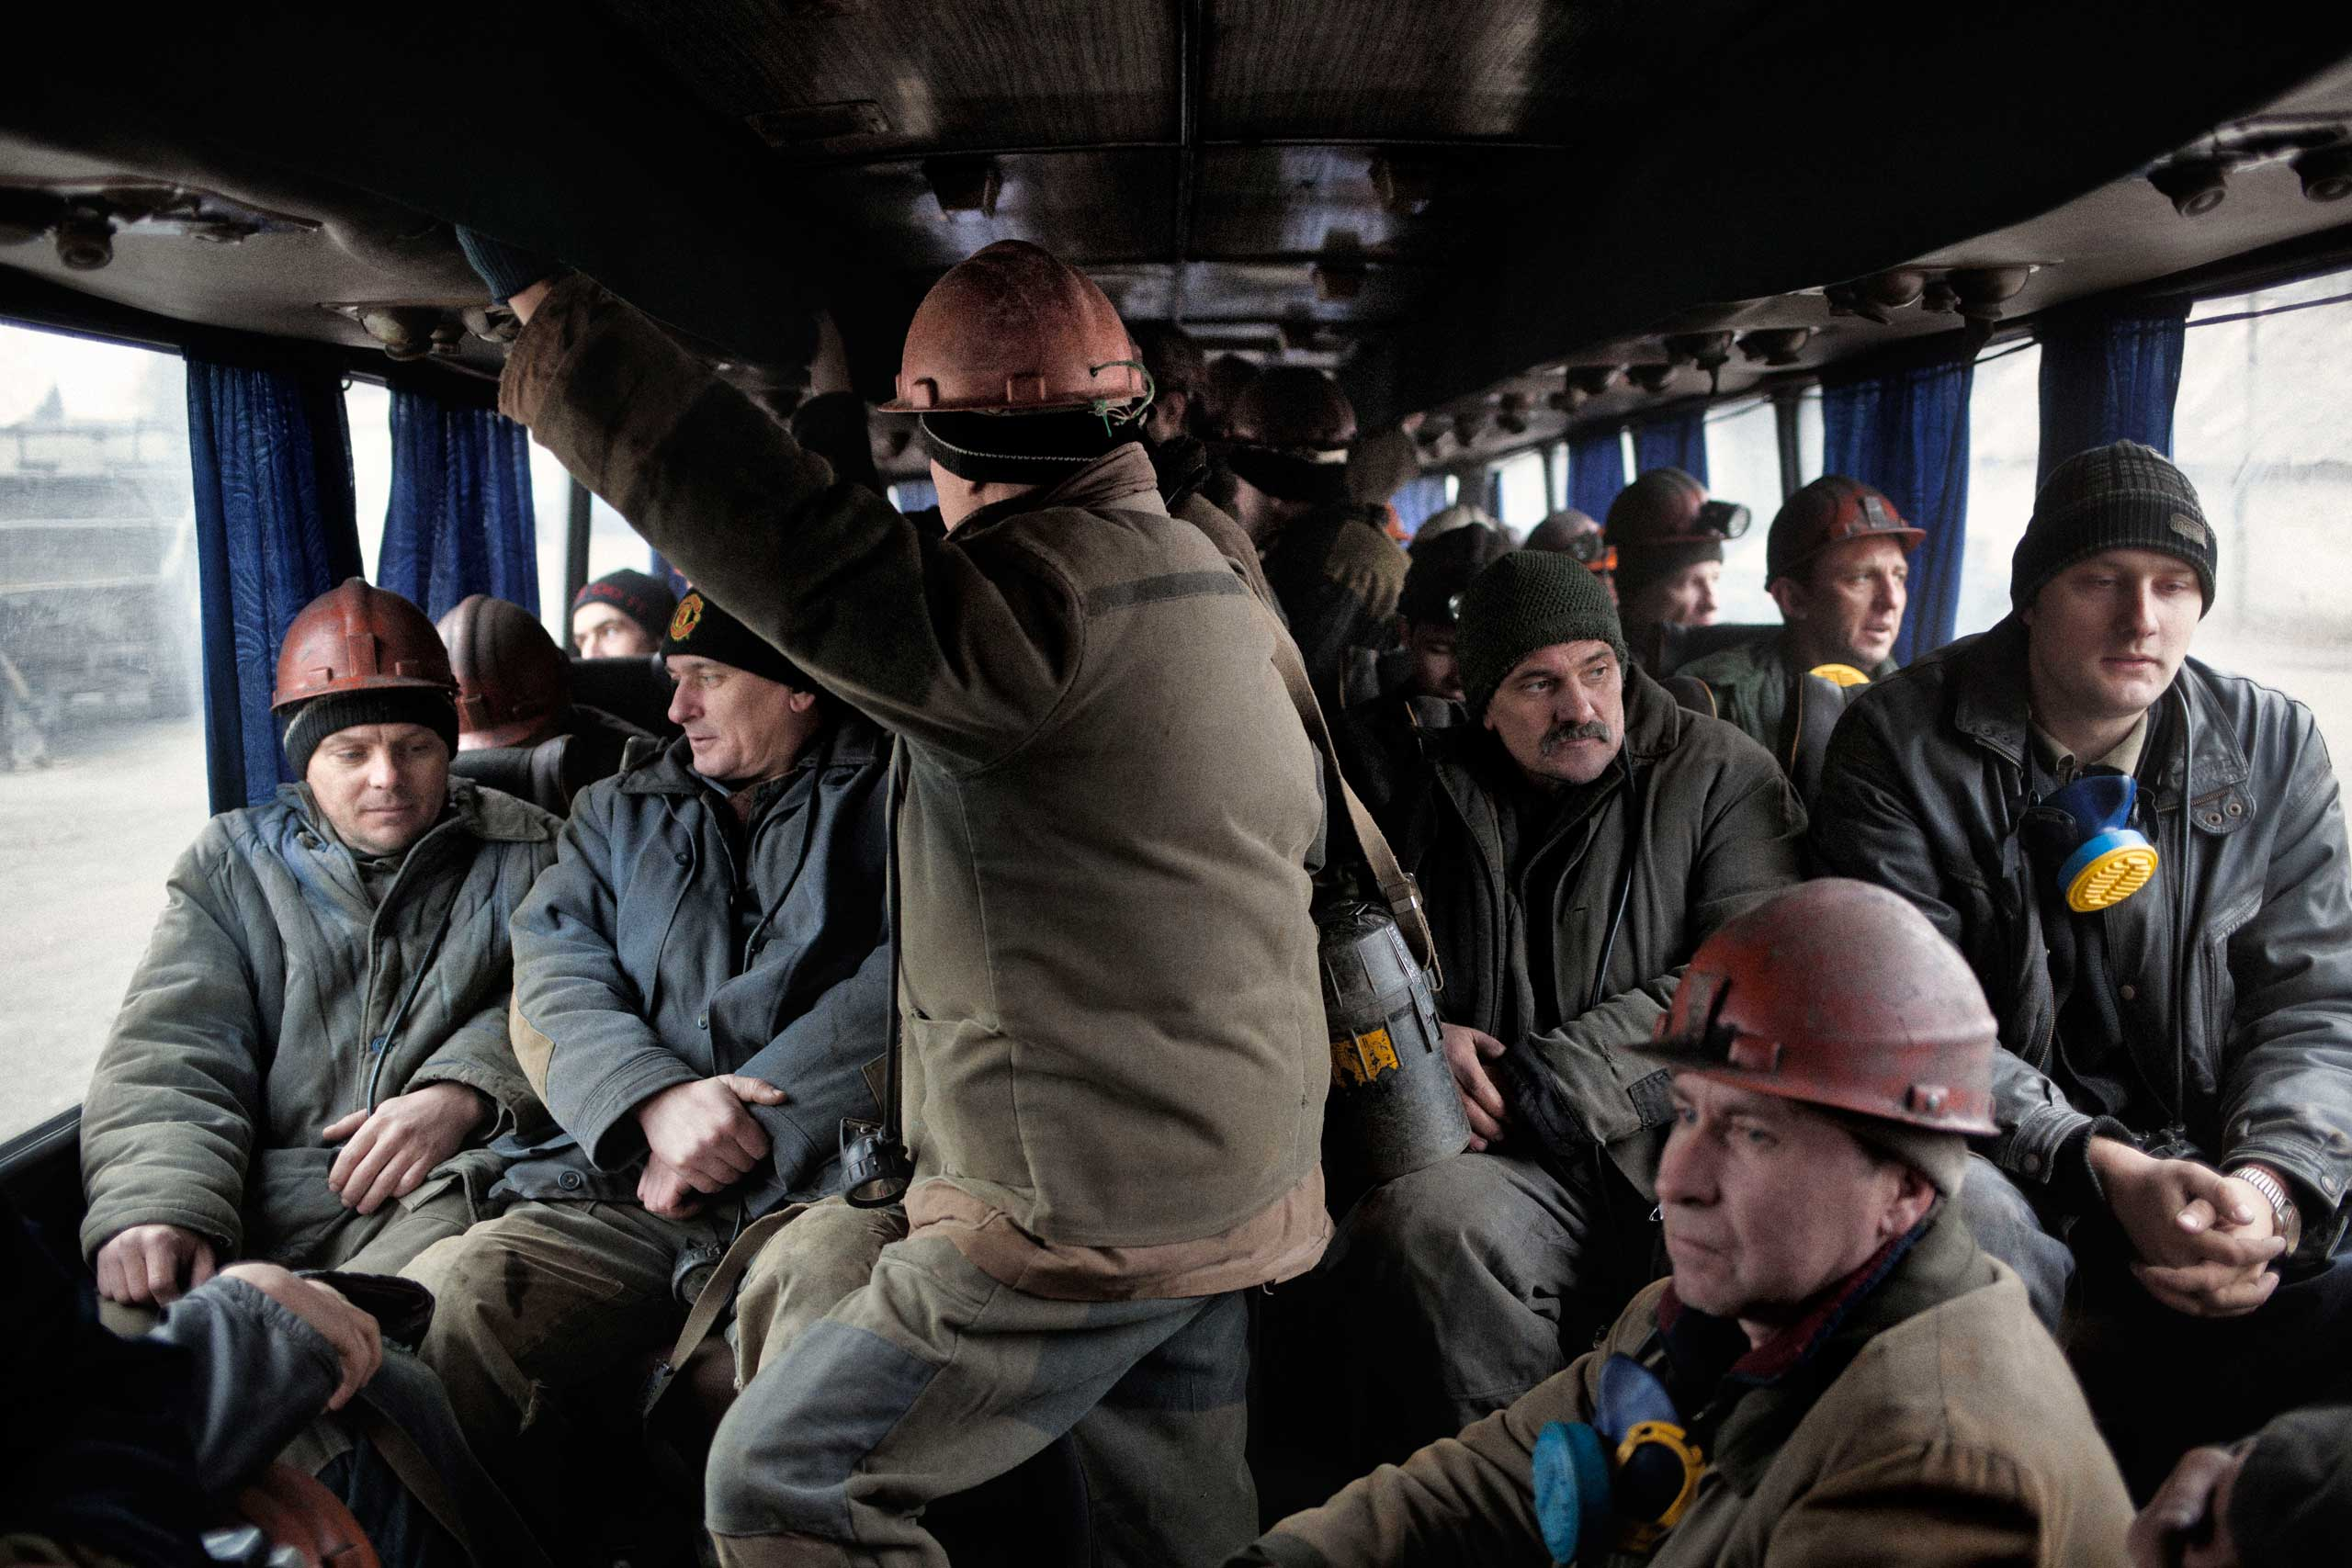 Miners on a bus going to the deepest shaft of the Chelyuskintsev coal mine, 8 kilometers away from the main complex. A shell landed 10 meters from the bus on the way, but they continued to the entrance of the shaft. Upon arrival, they learned that the power had not yet been restored after the shelling two days earlier. Petrovskyi district, Donetsk, Ukraine. Nov. 24, 2014.